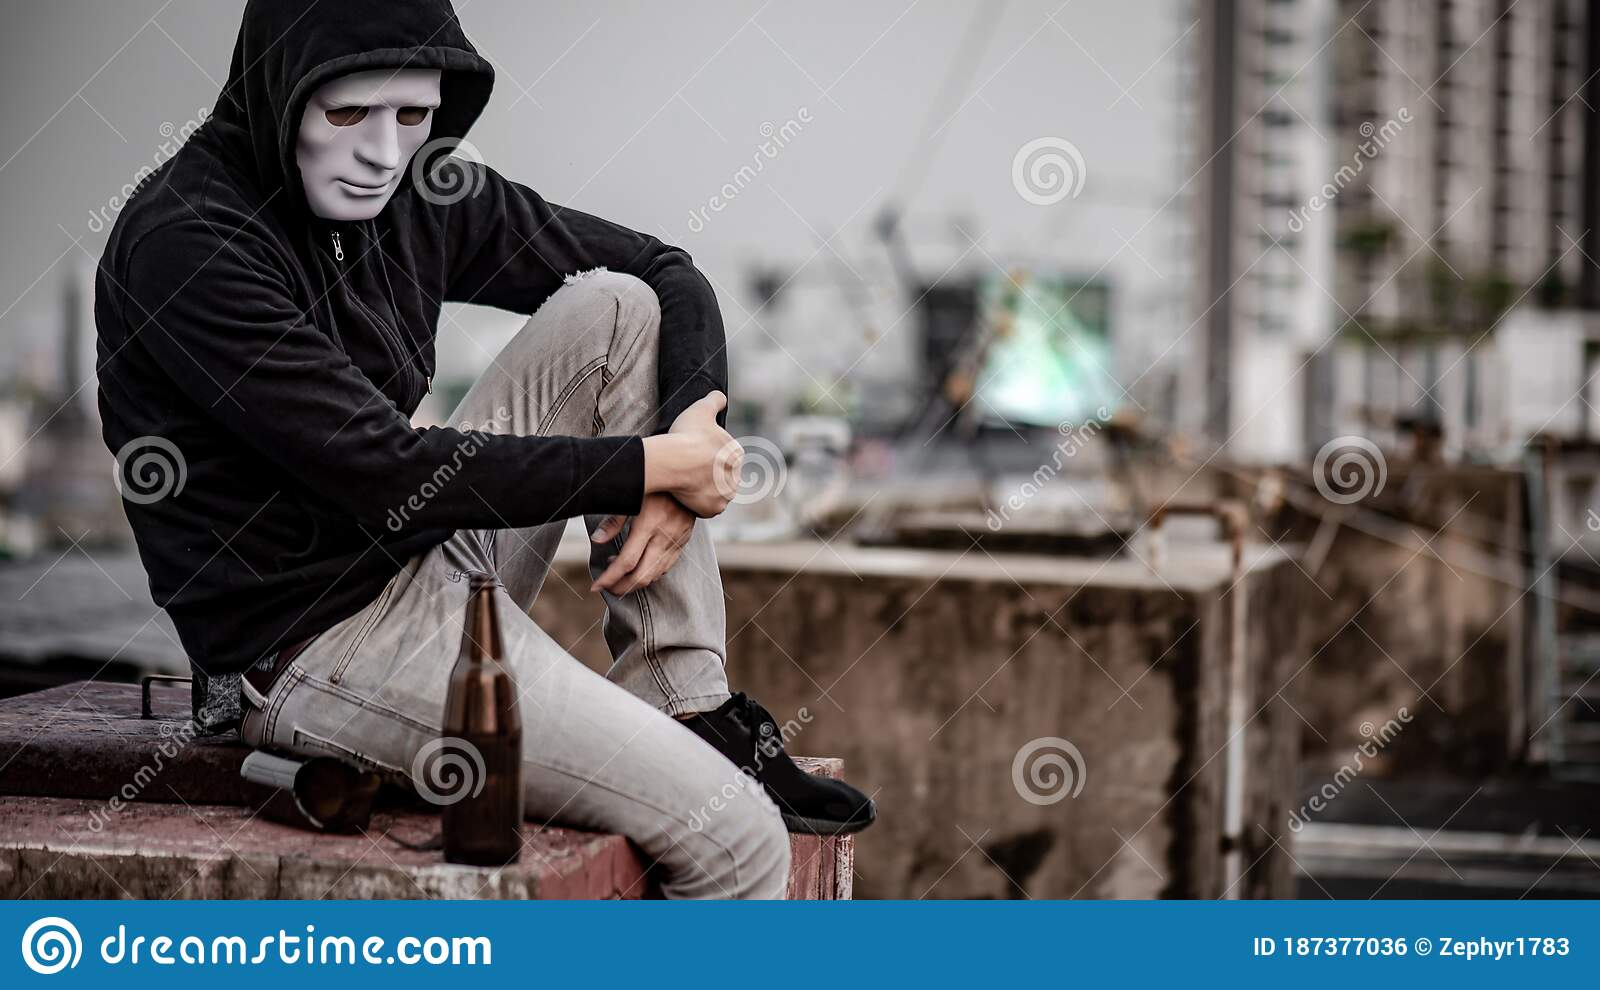 Mystery Man Sitting On Abandoned Building Stock Photo Image Of Drunk Bullying 187377036